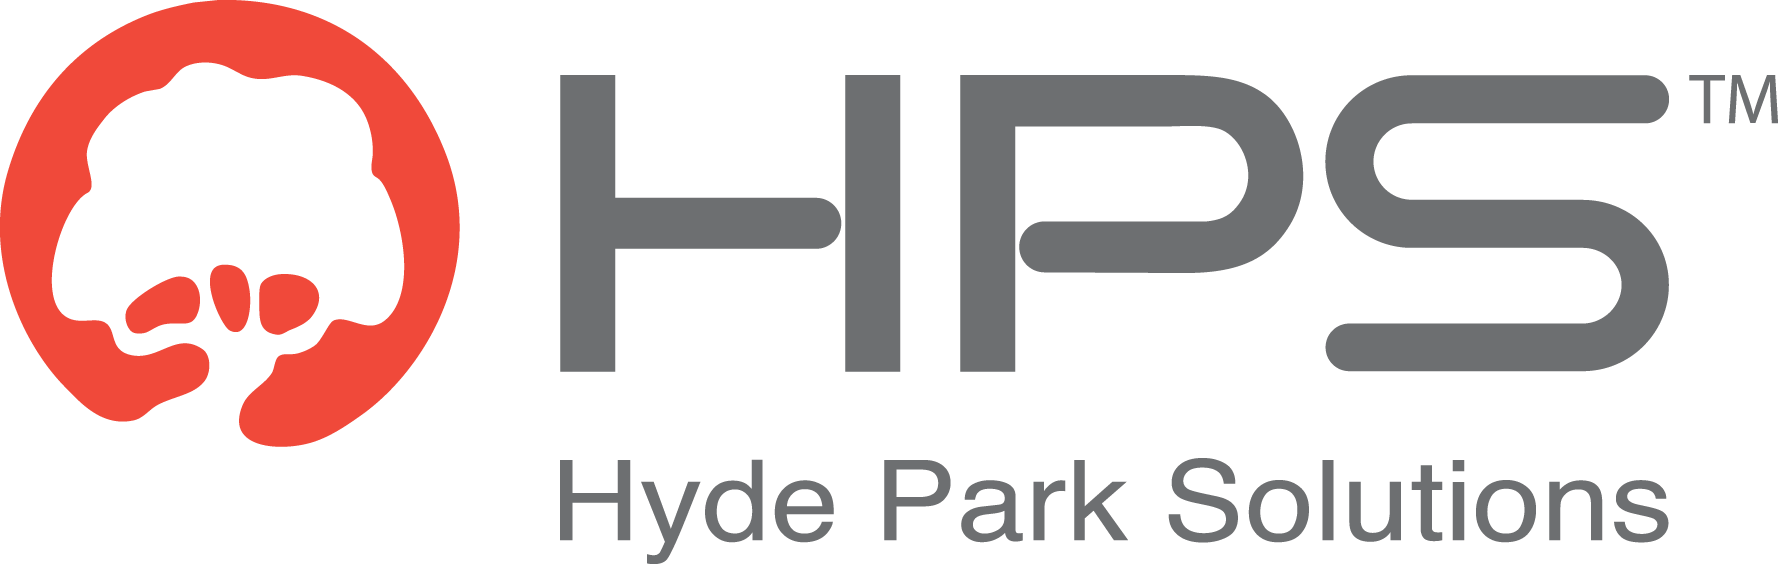 Hyde Park Solutions - Headline sponsor for Power of Projects 2020 - London